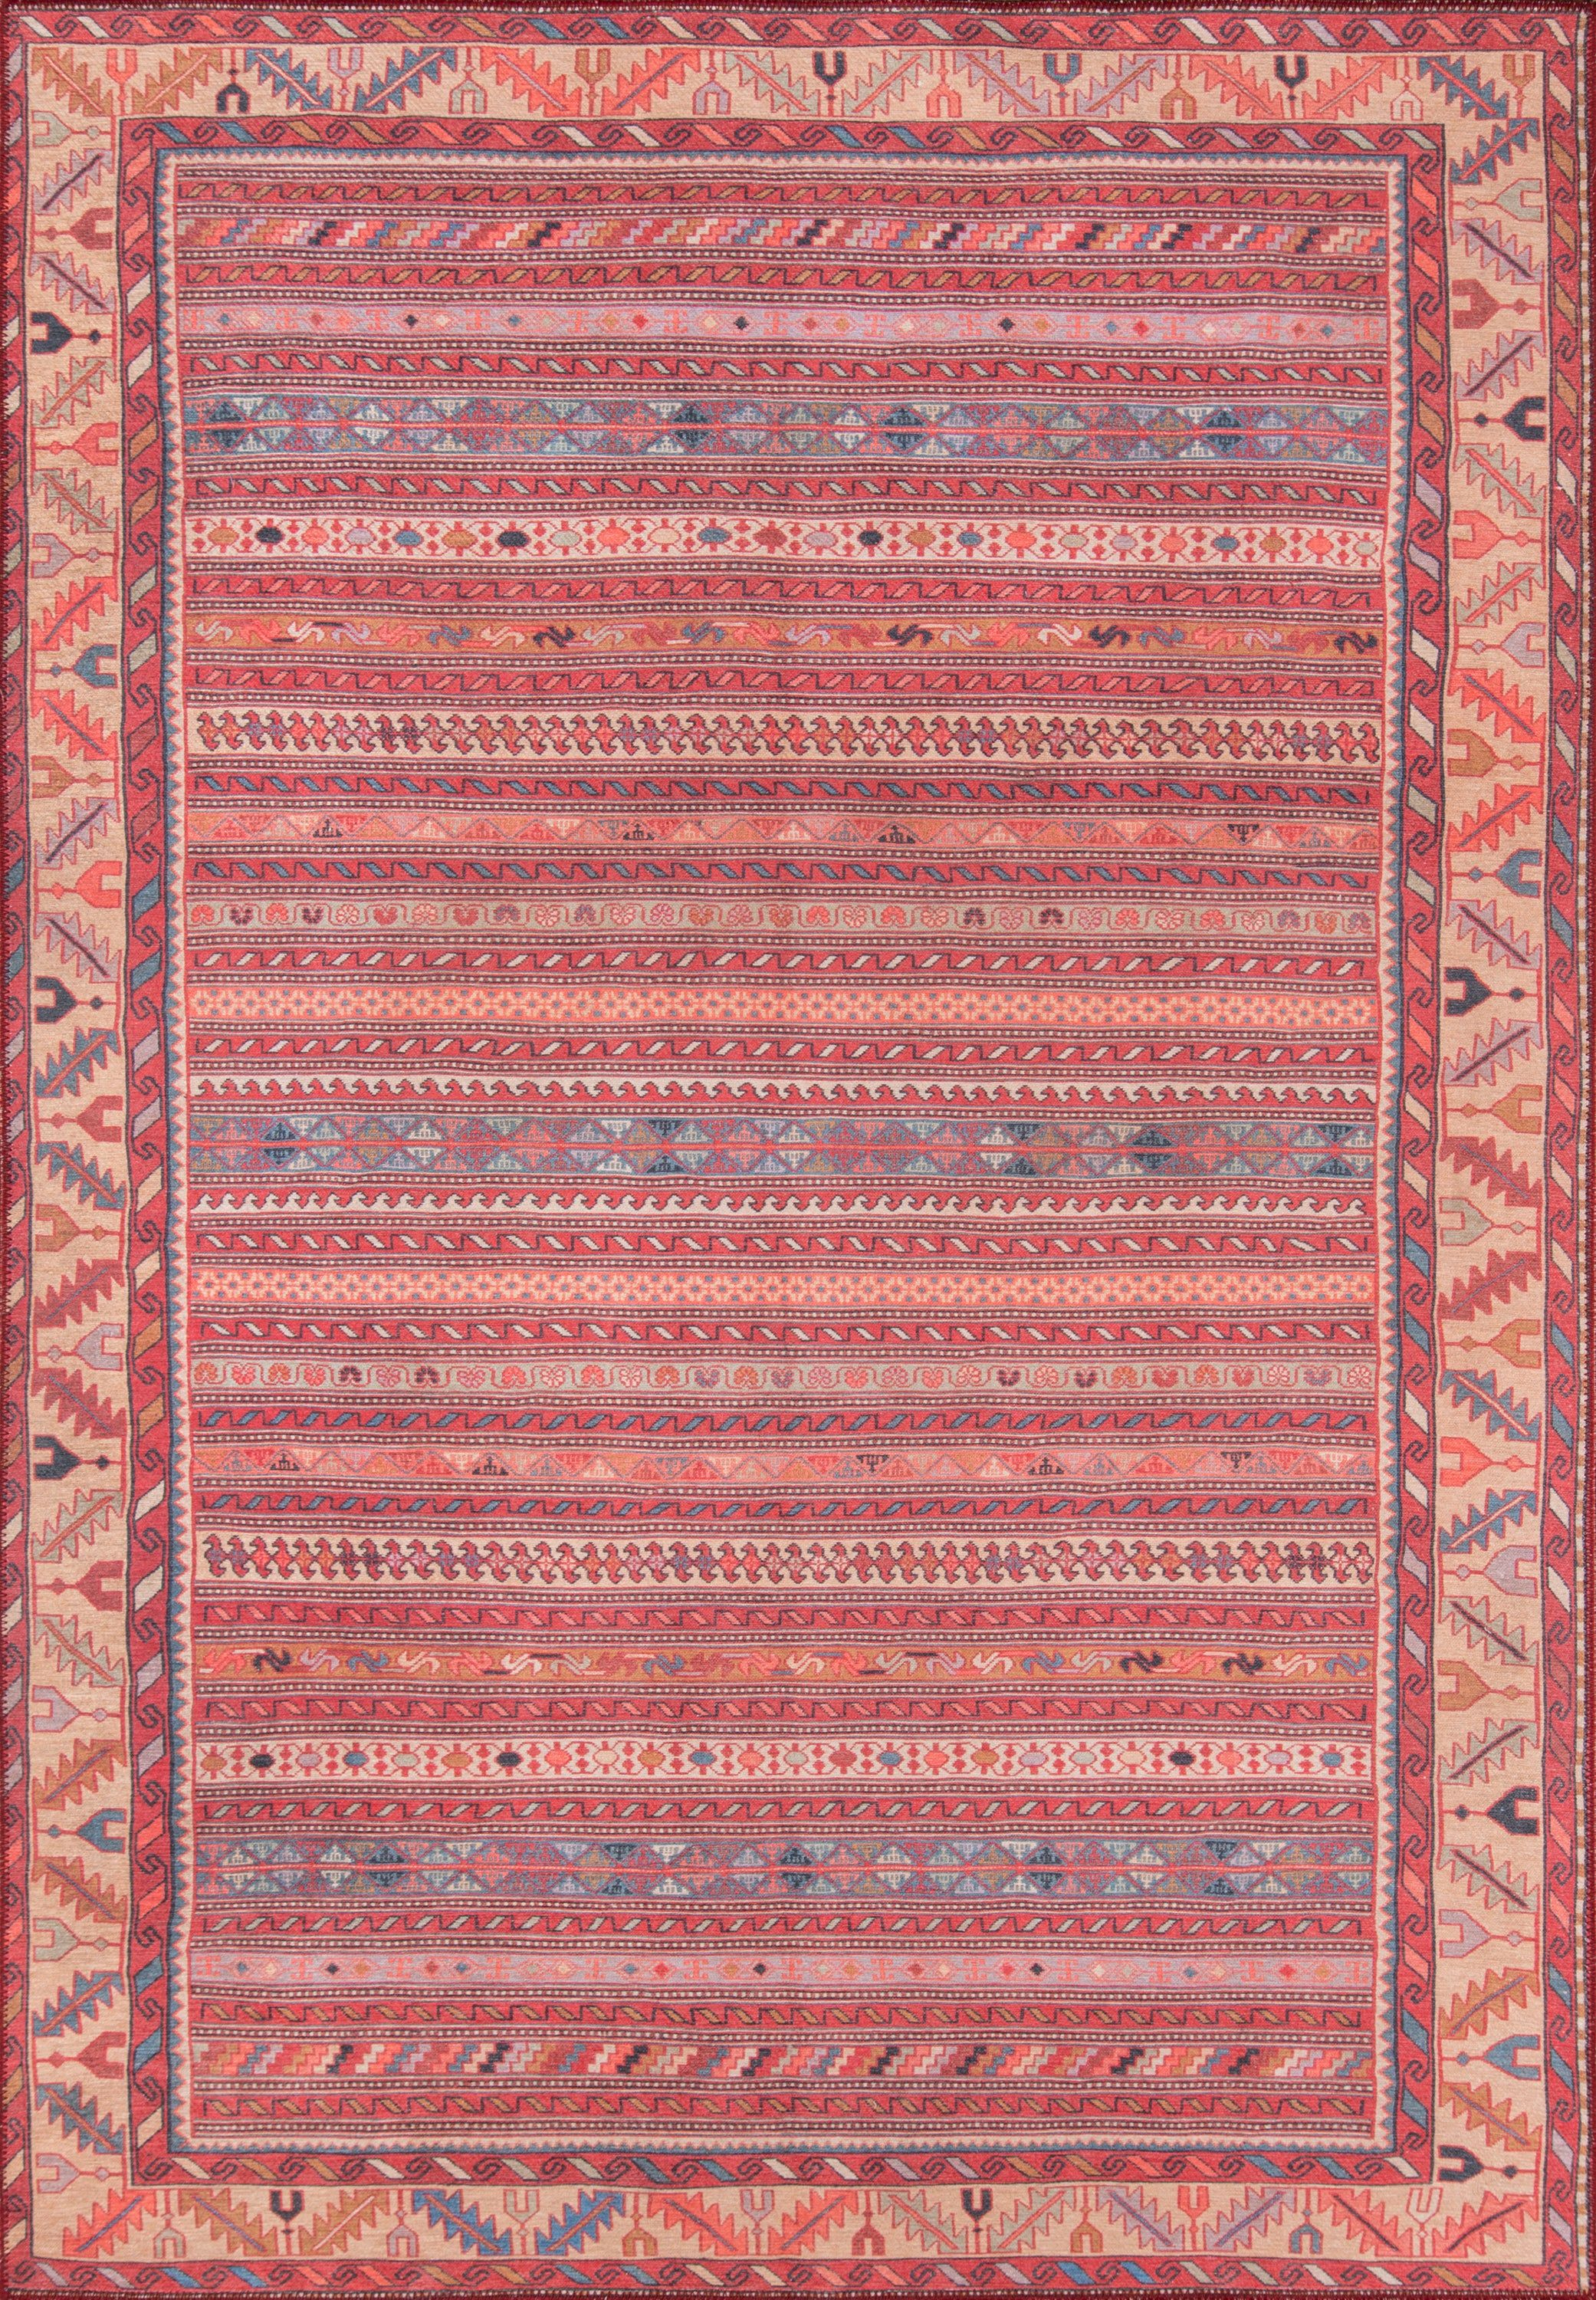 Nador Rug Area Rugs Rugs Tribal Area Rug